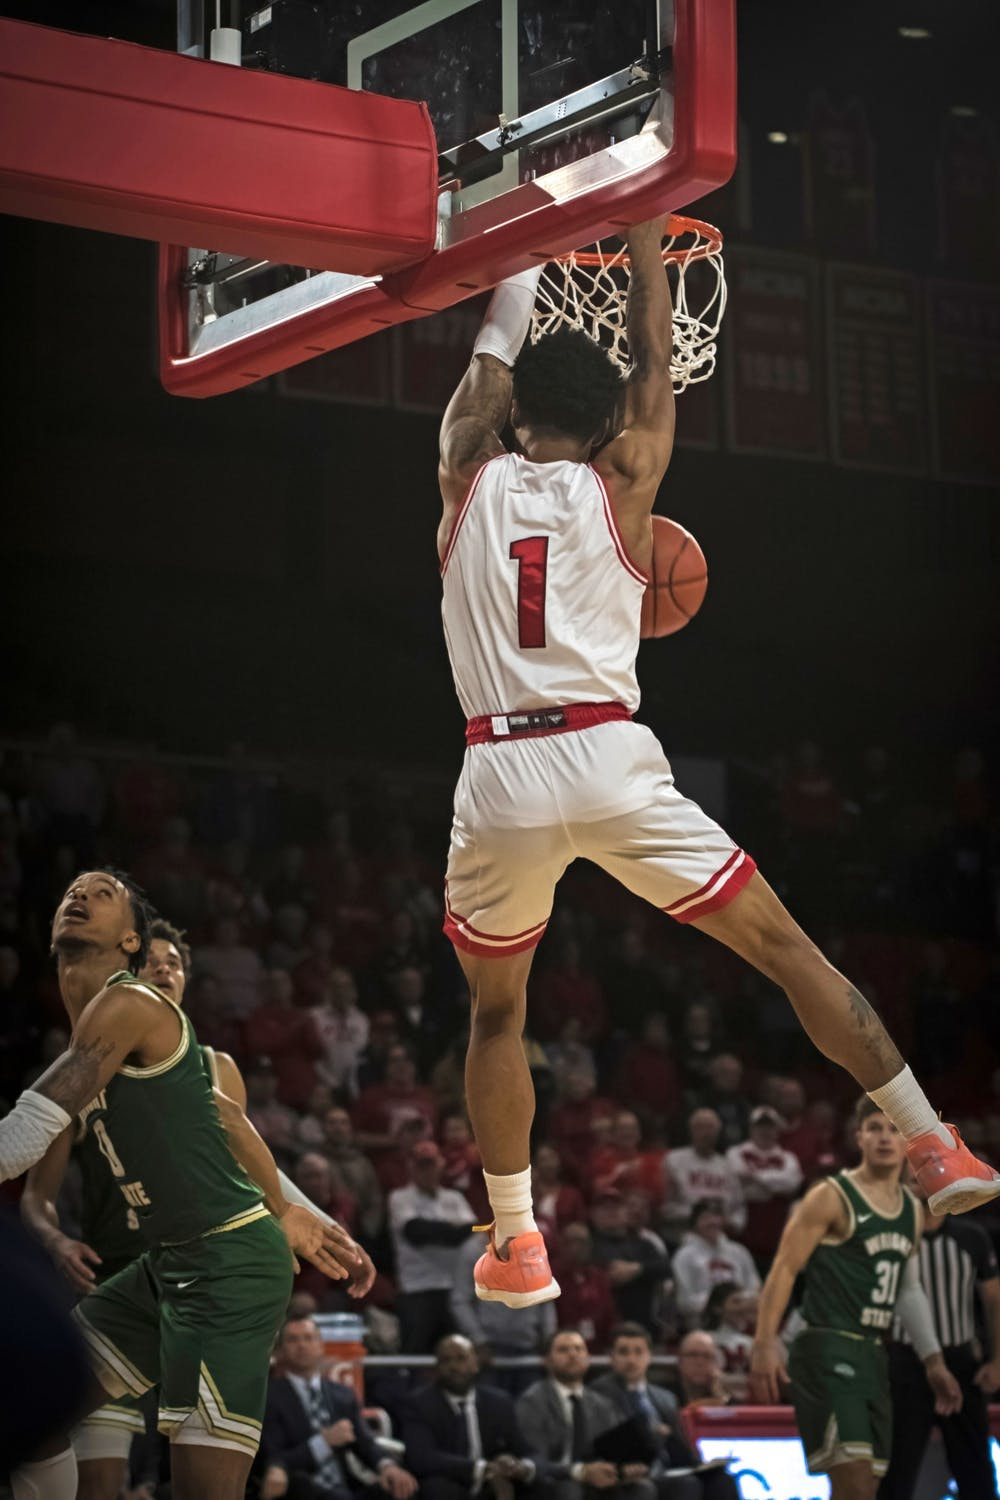 <p>Junior guard Nike Sibande dunks an alley-oop pass for Miami&#x27;s first points of the 2019-2020 season on Nov. 9 at Millett Hall. Sibande, who flirted with the National Basketball Association in the offseason, scored 24 points in the RedHawks&#x27; 88-81 loss to Wright State.</p>